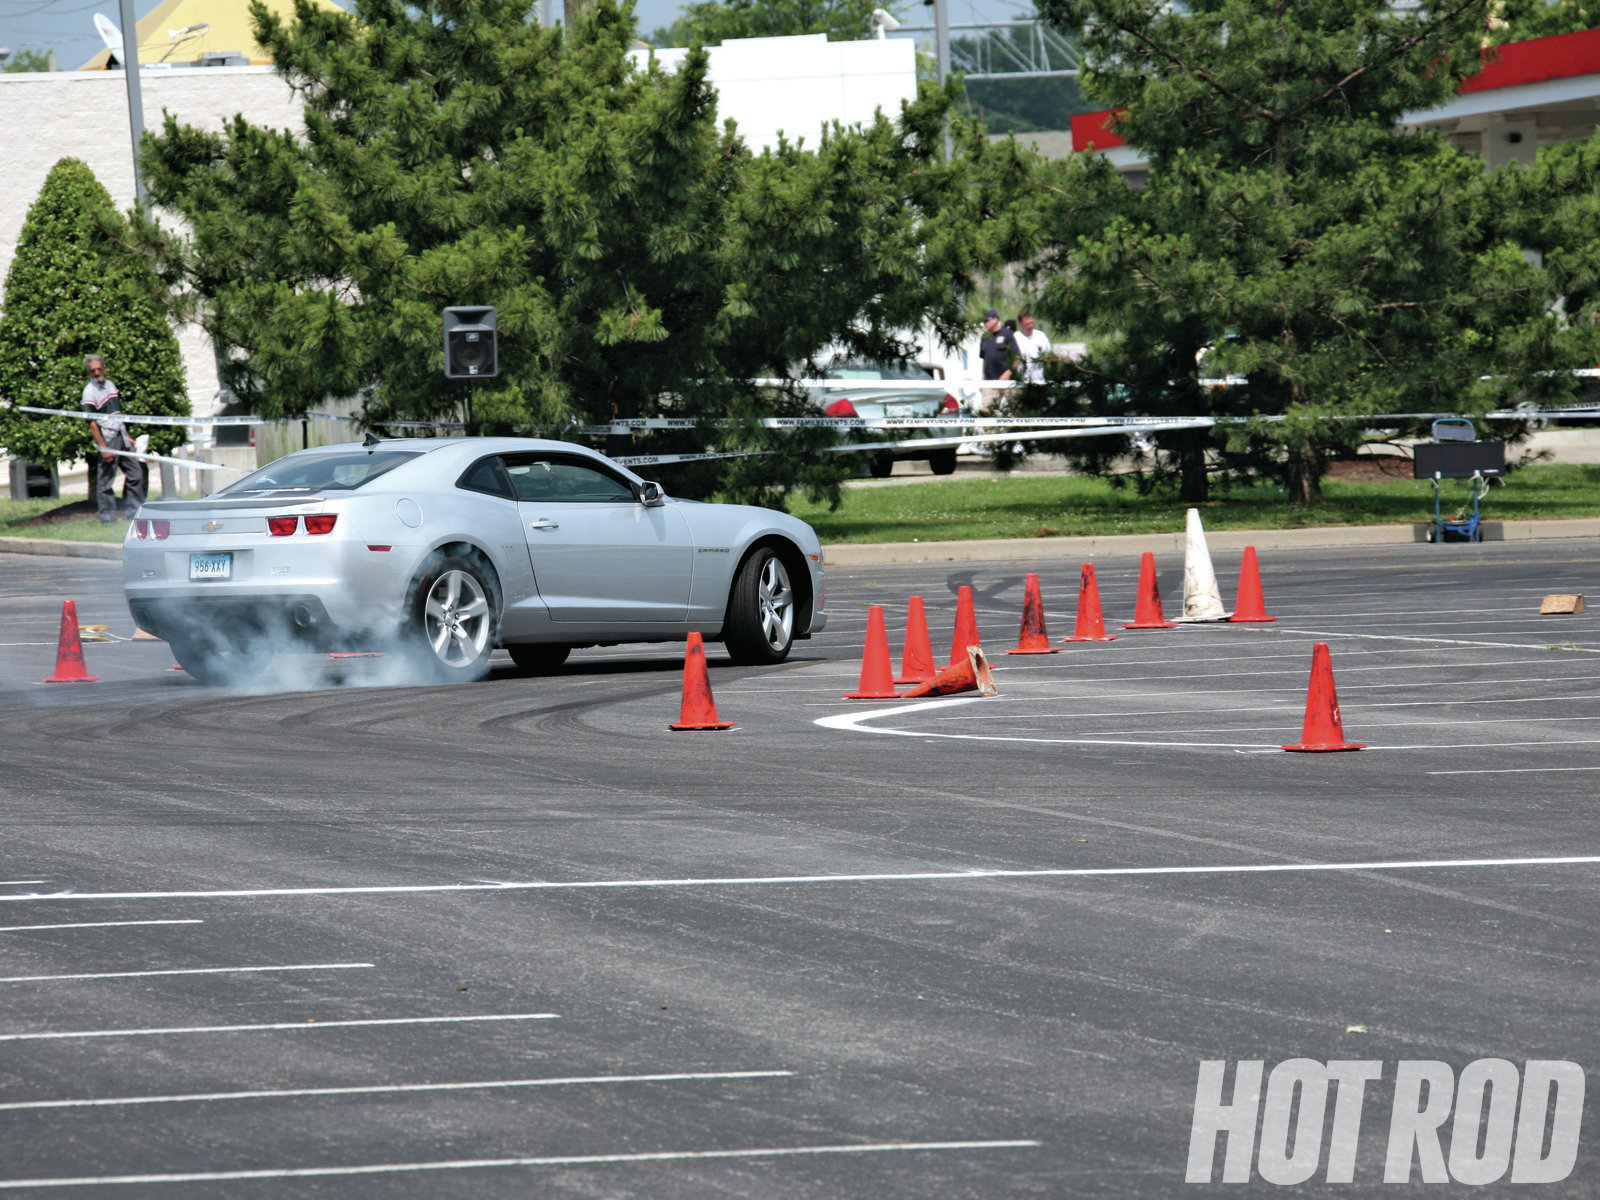 The end of the course is usually flagged by a taller cone, such as the white one here. This guy is close to taking out the lights with his left side. Don't do that.